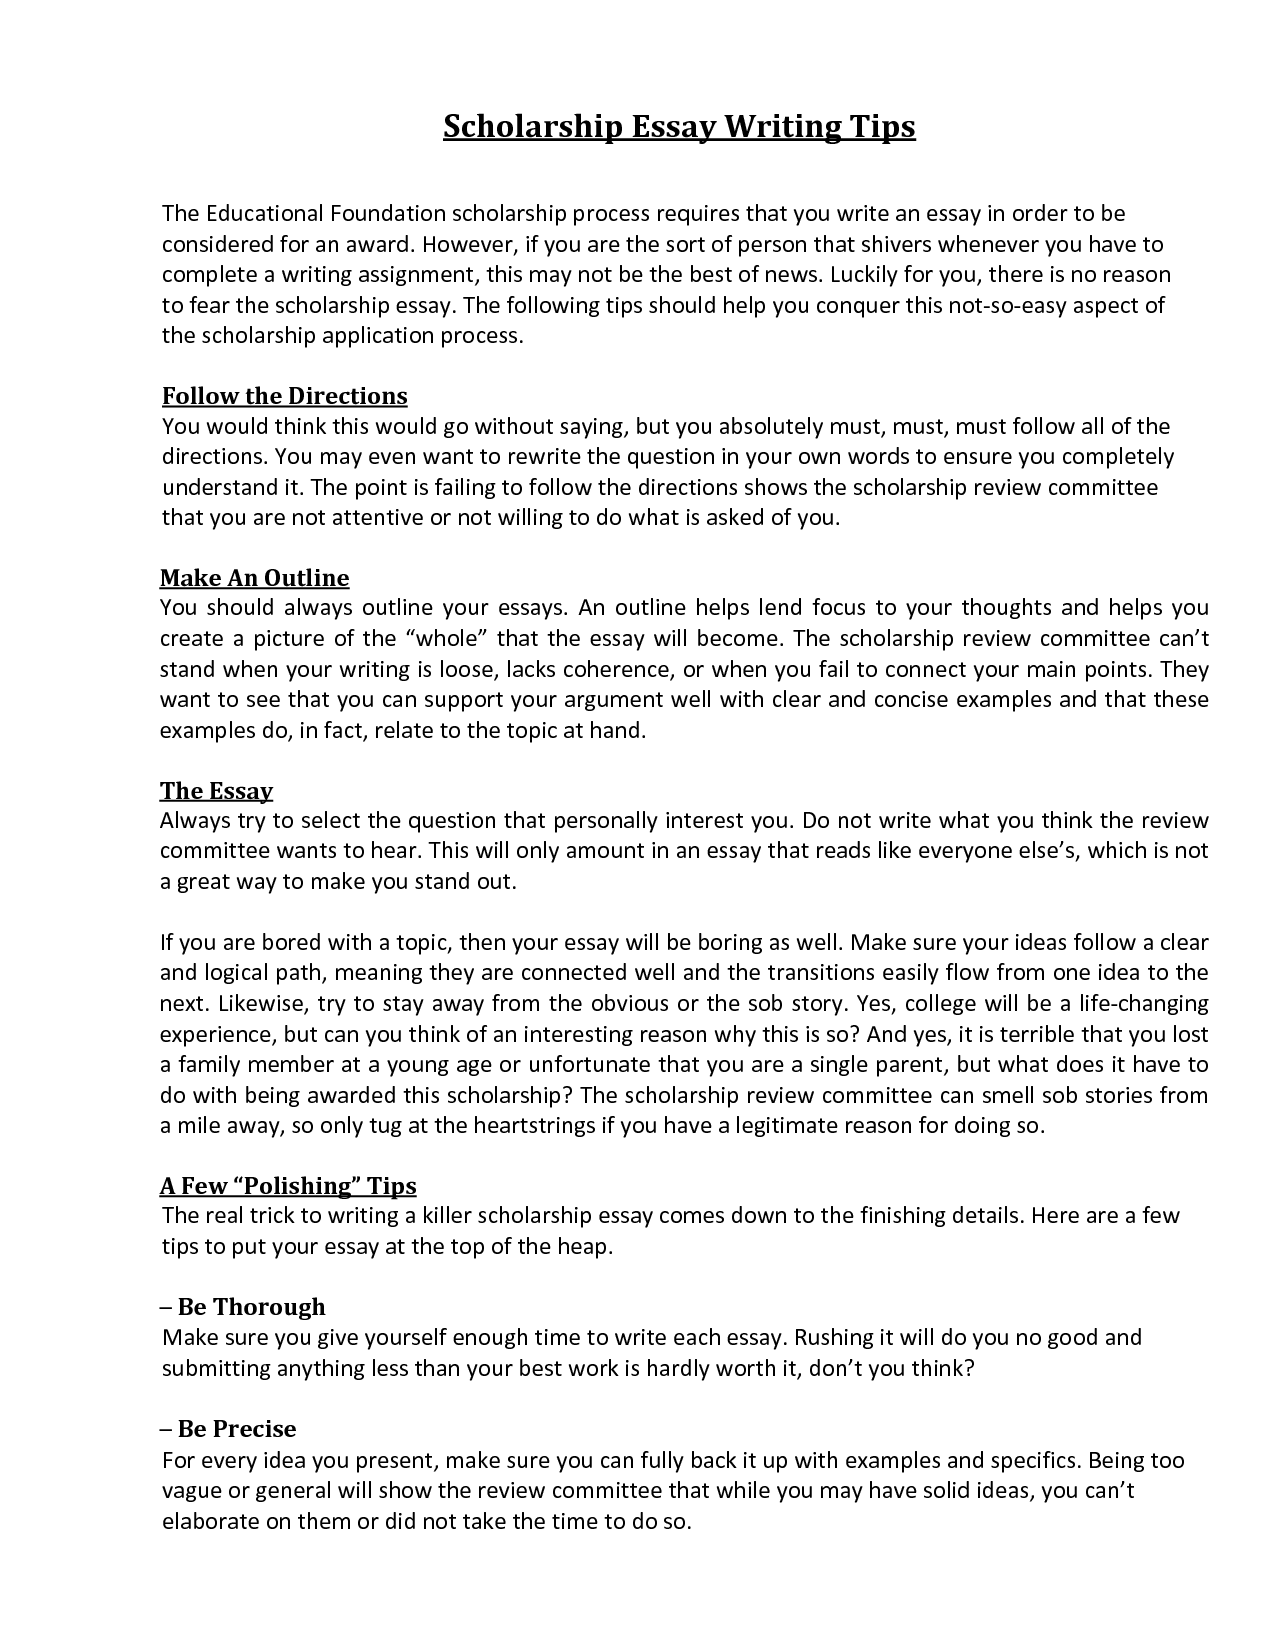 008 Essay Example Nhs Scholarship Prompt Archives Madhurbatter College Topics List Application Examples Gecce Tackletar Magnificent Prompts Robertson 2018-19 Vanderbilt Washington And Lee Johnson Full